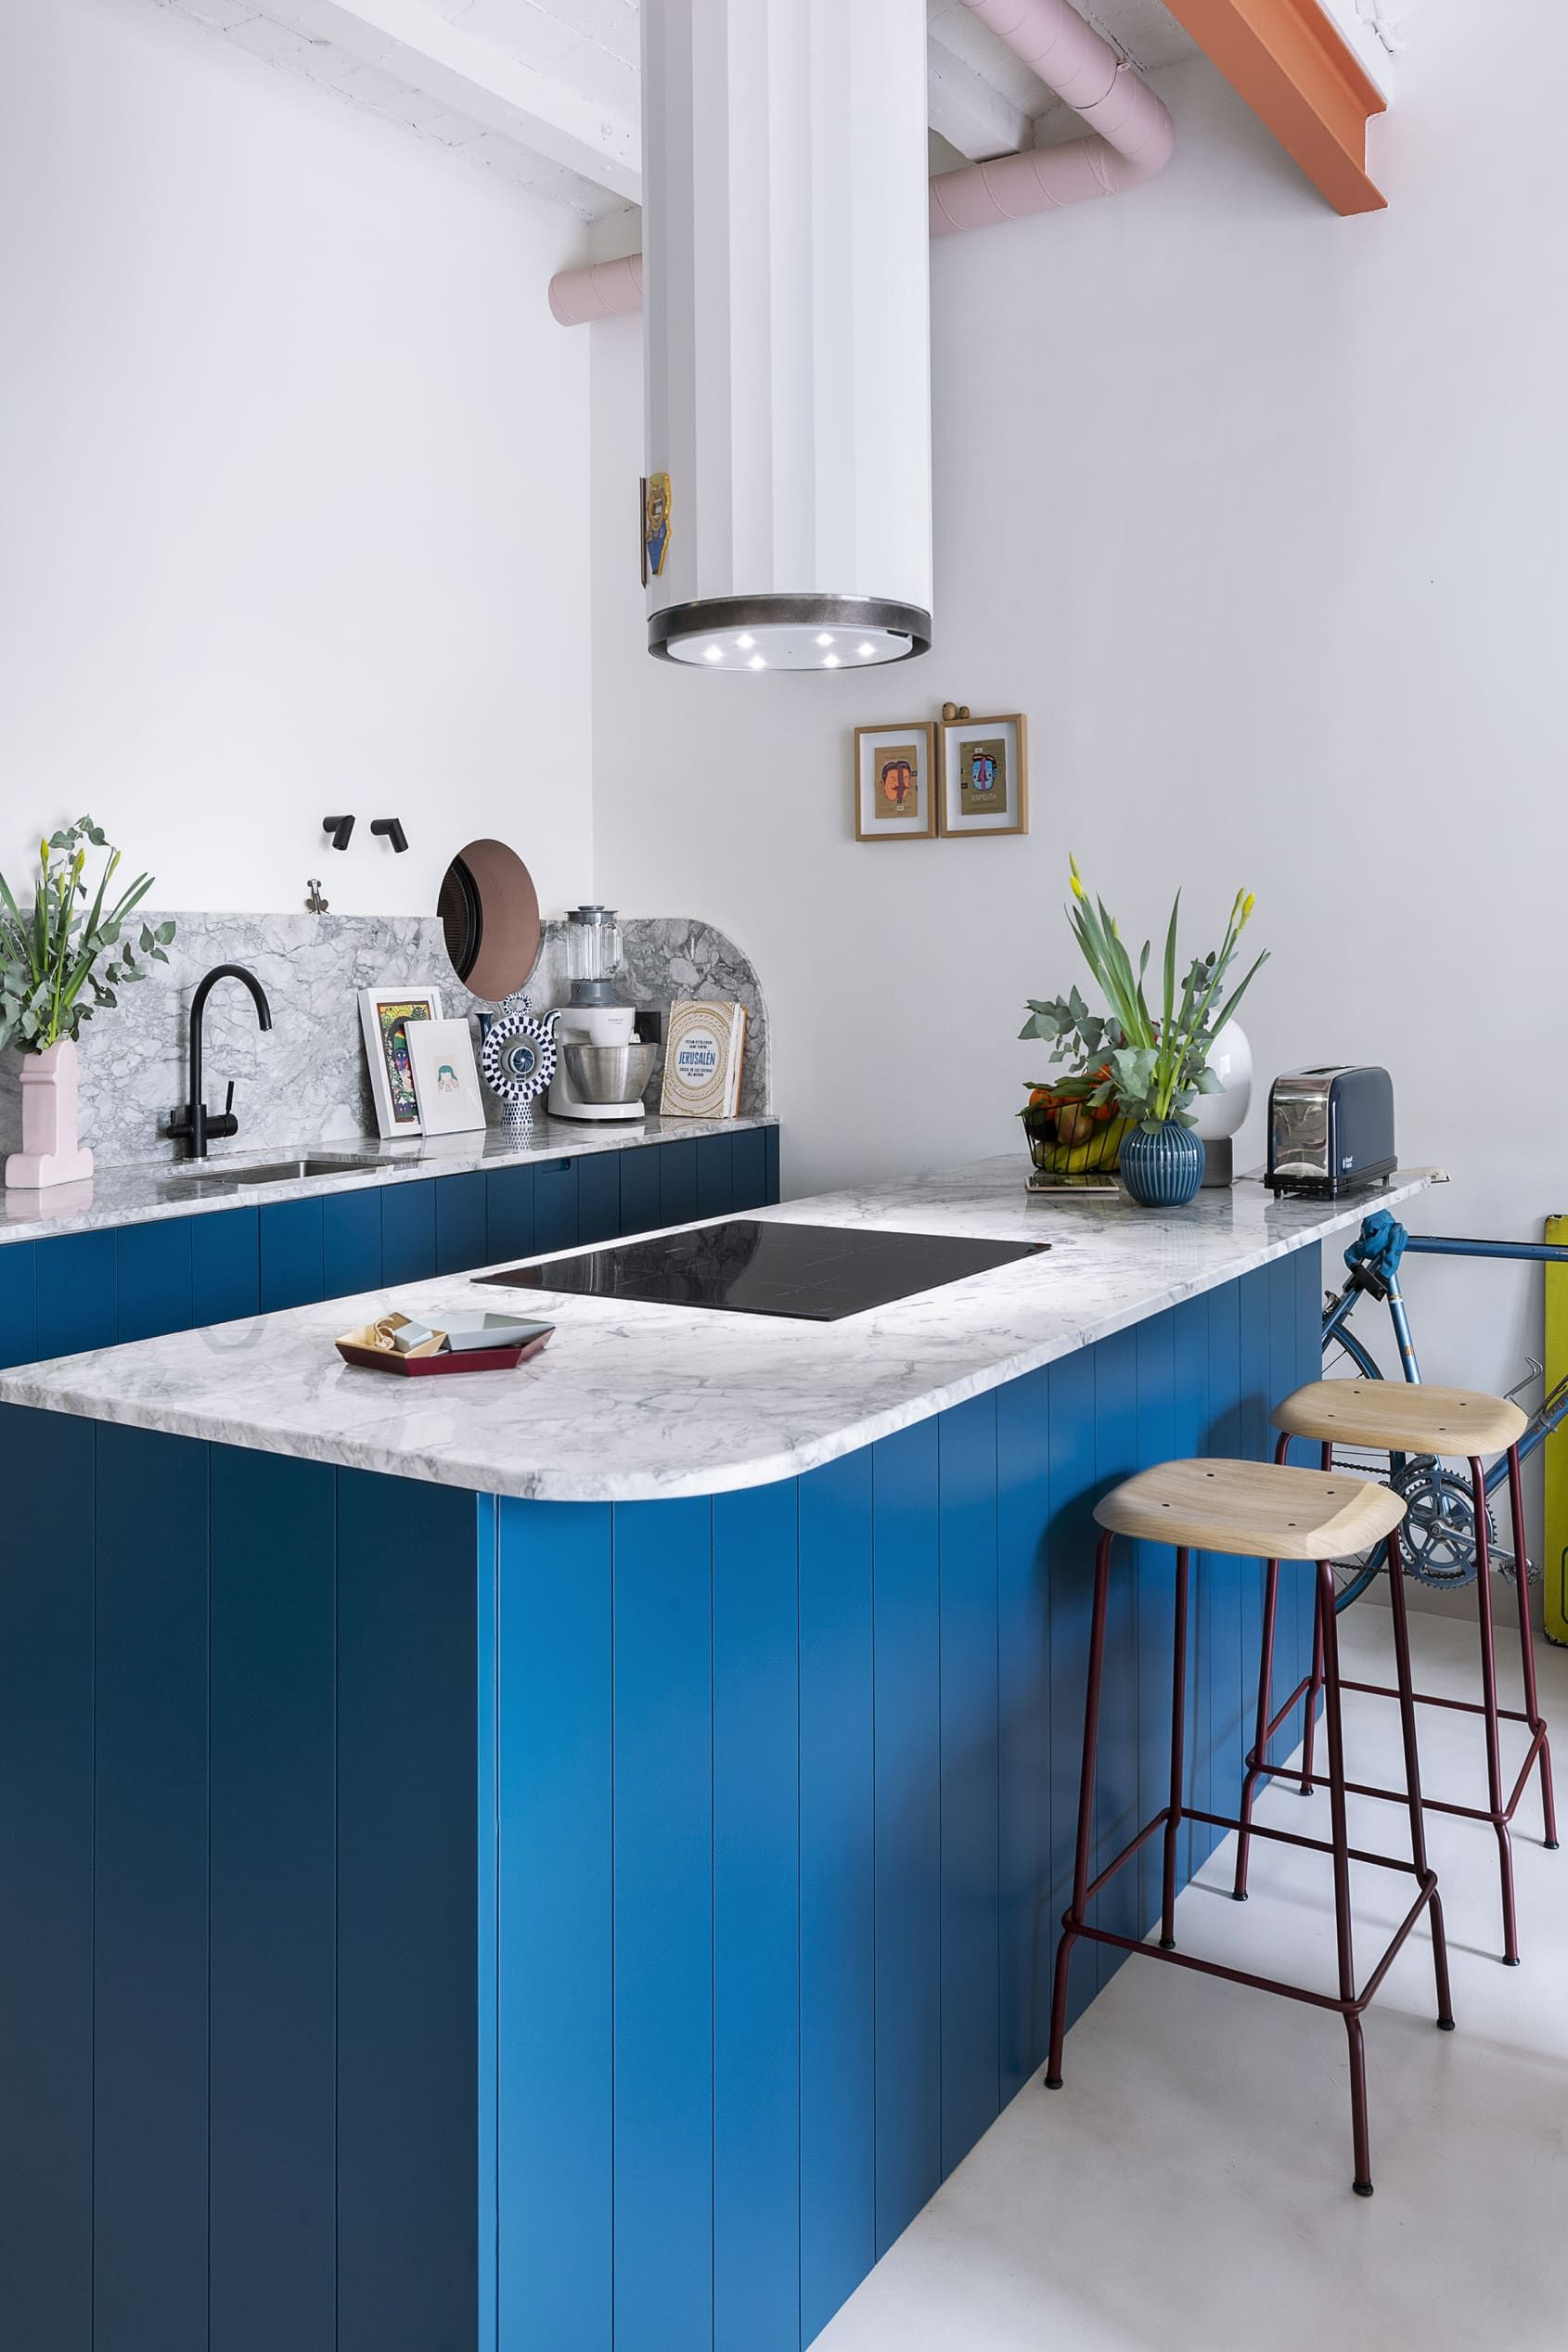 This Modern Remodel S Kitchen And Bathroom Color Palette Is Eye Popping Modern Kitchen Colours Kitchen Remodel Modern Remodel